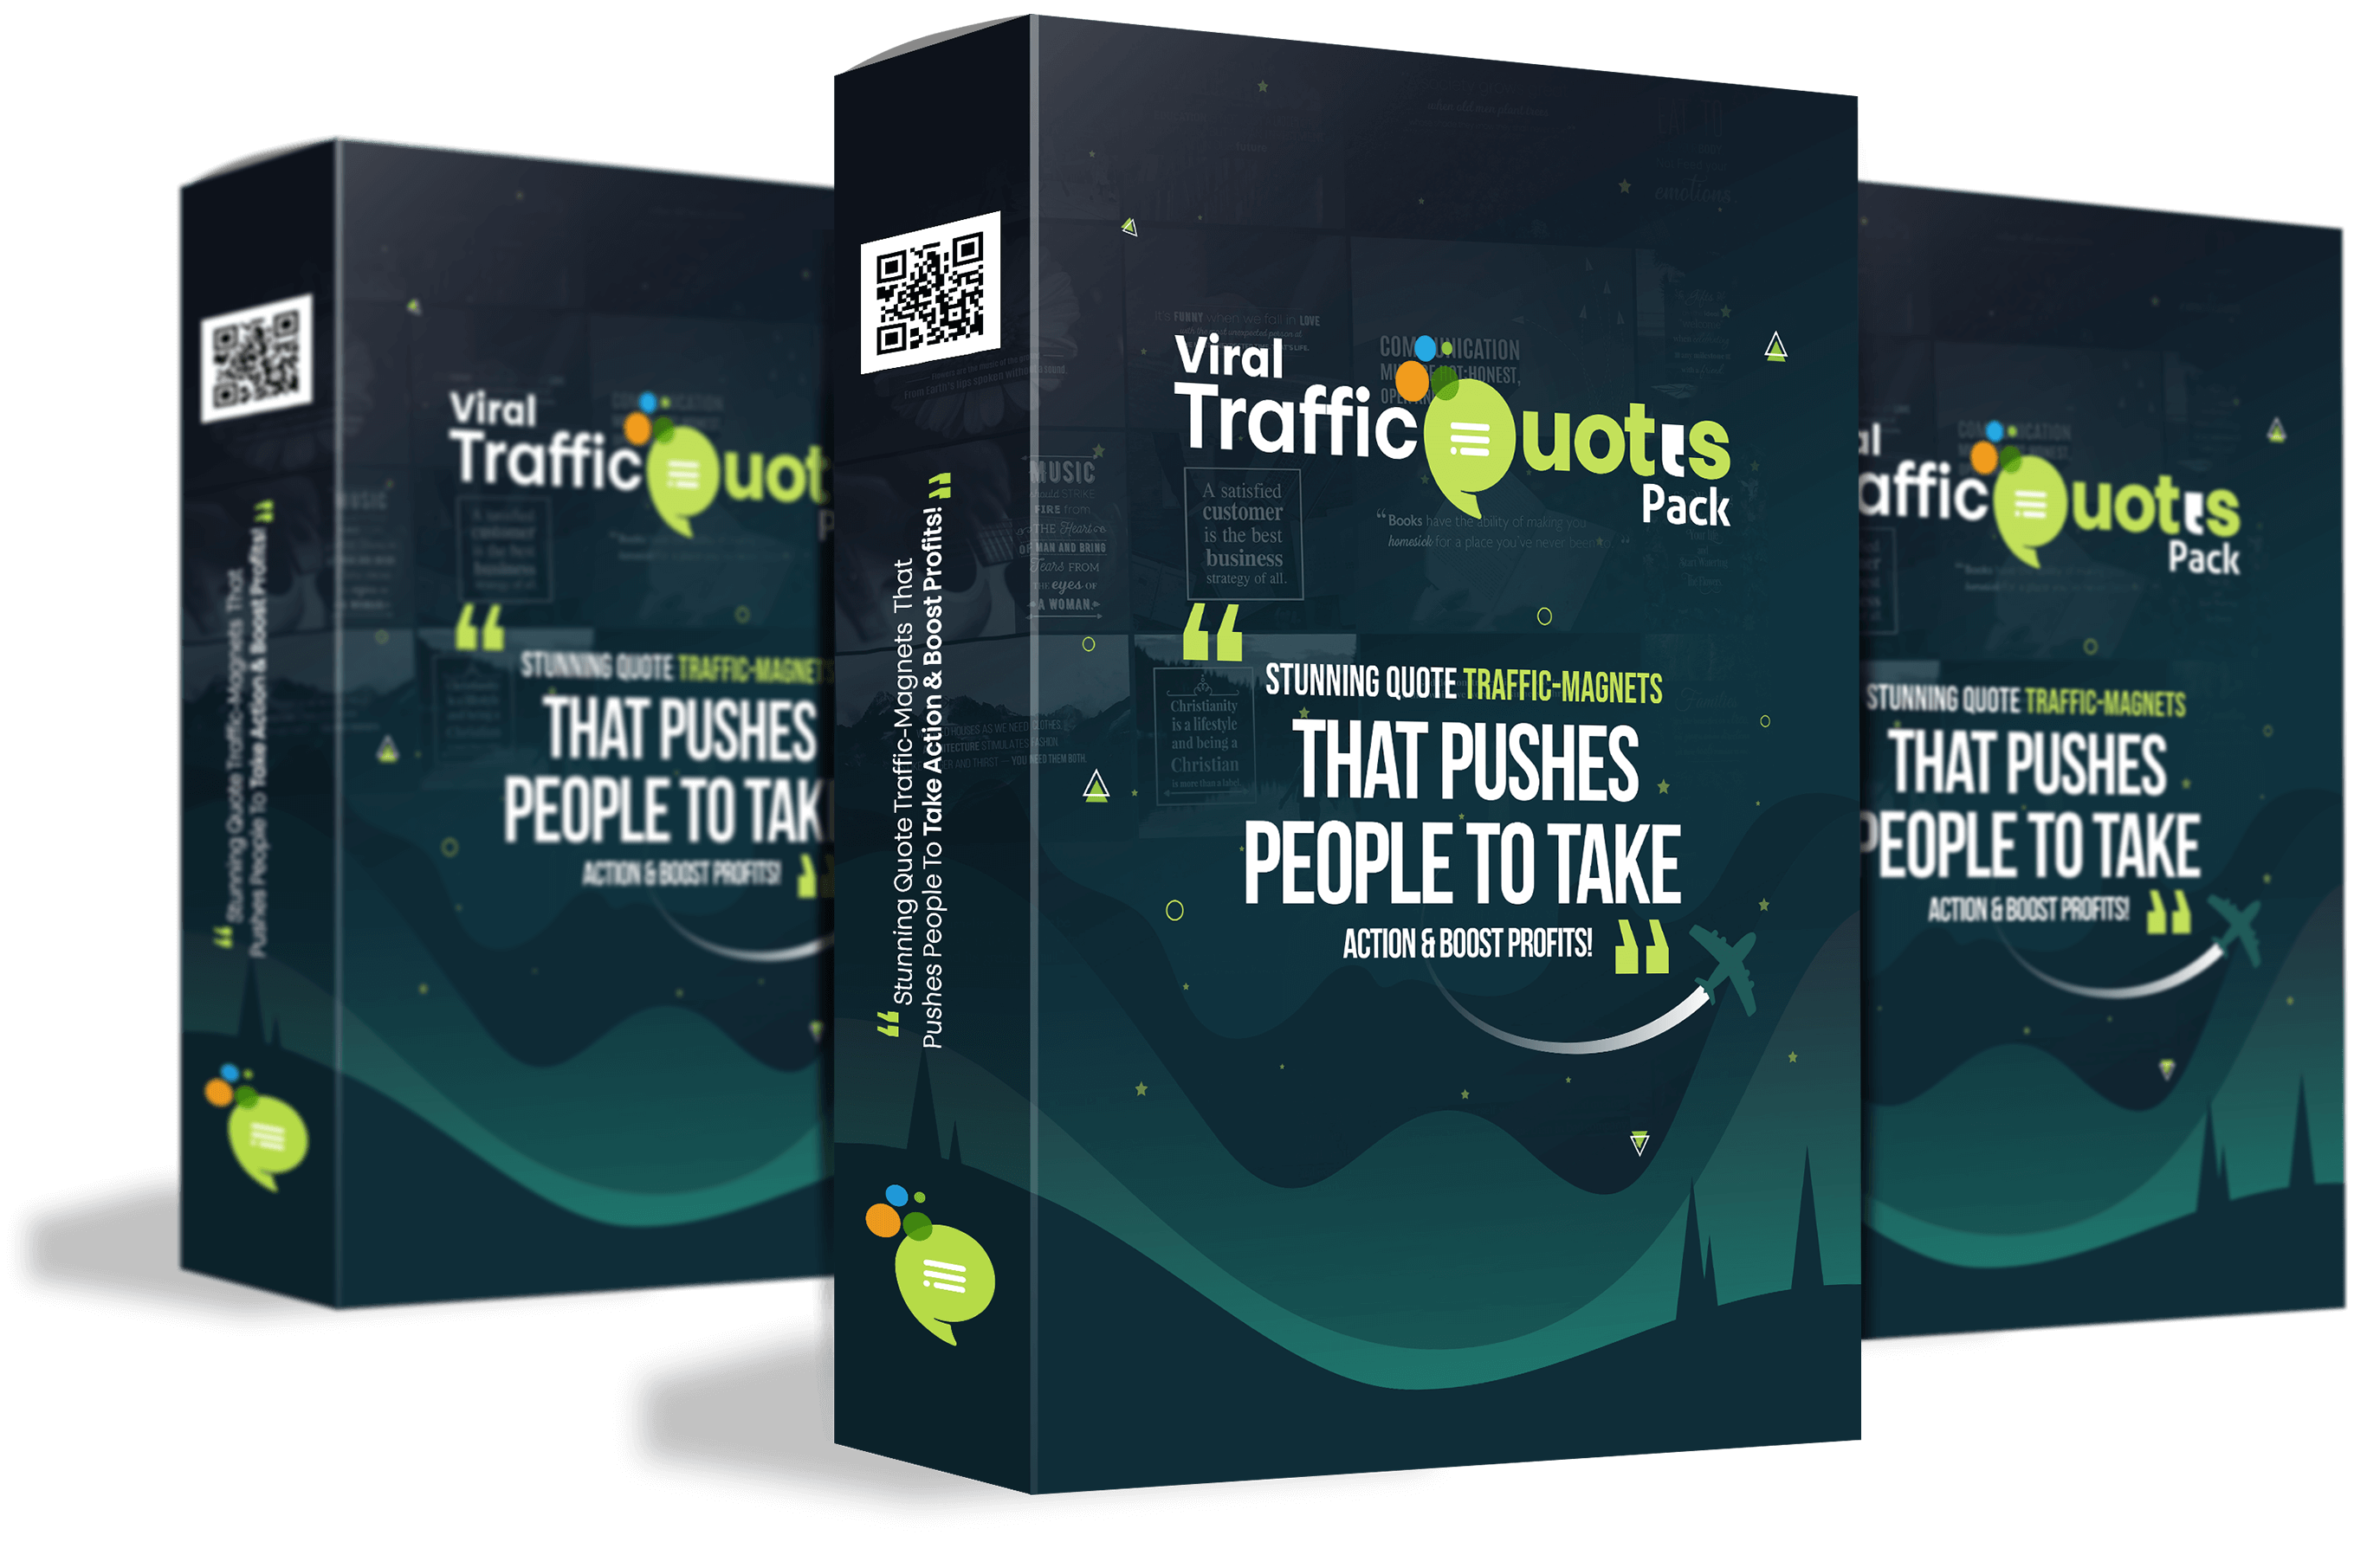 Viral-Traffic-Quotes-Pack-Review